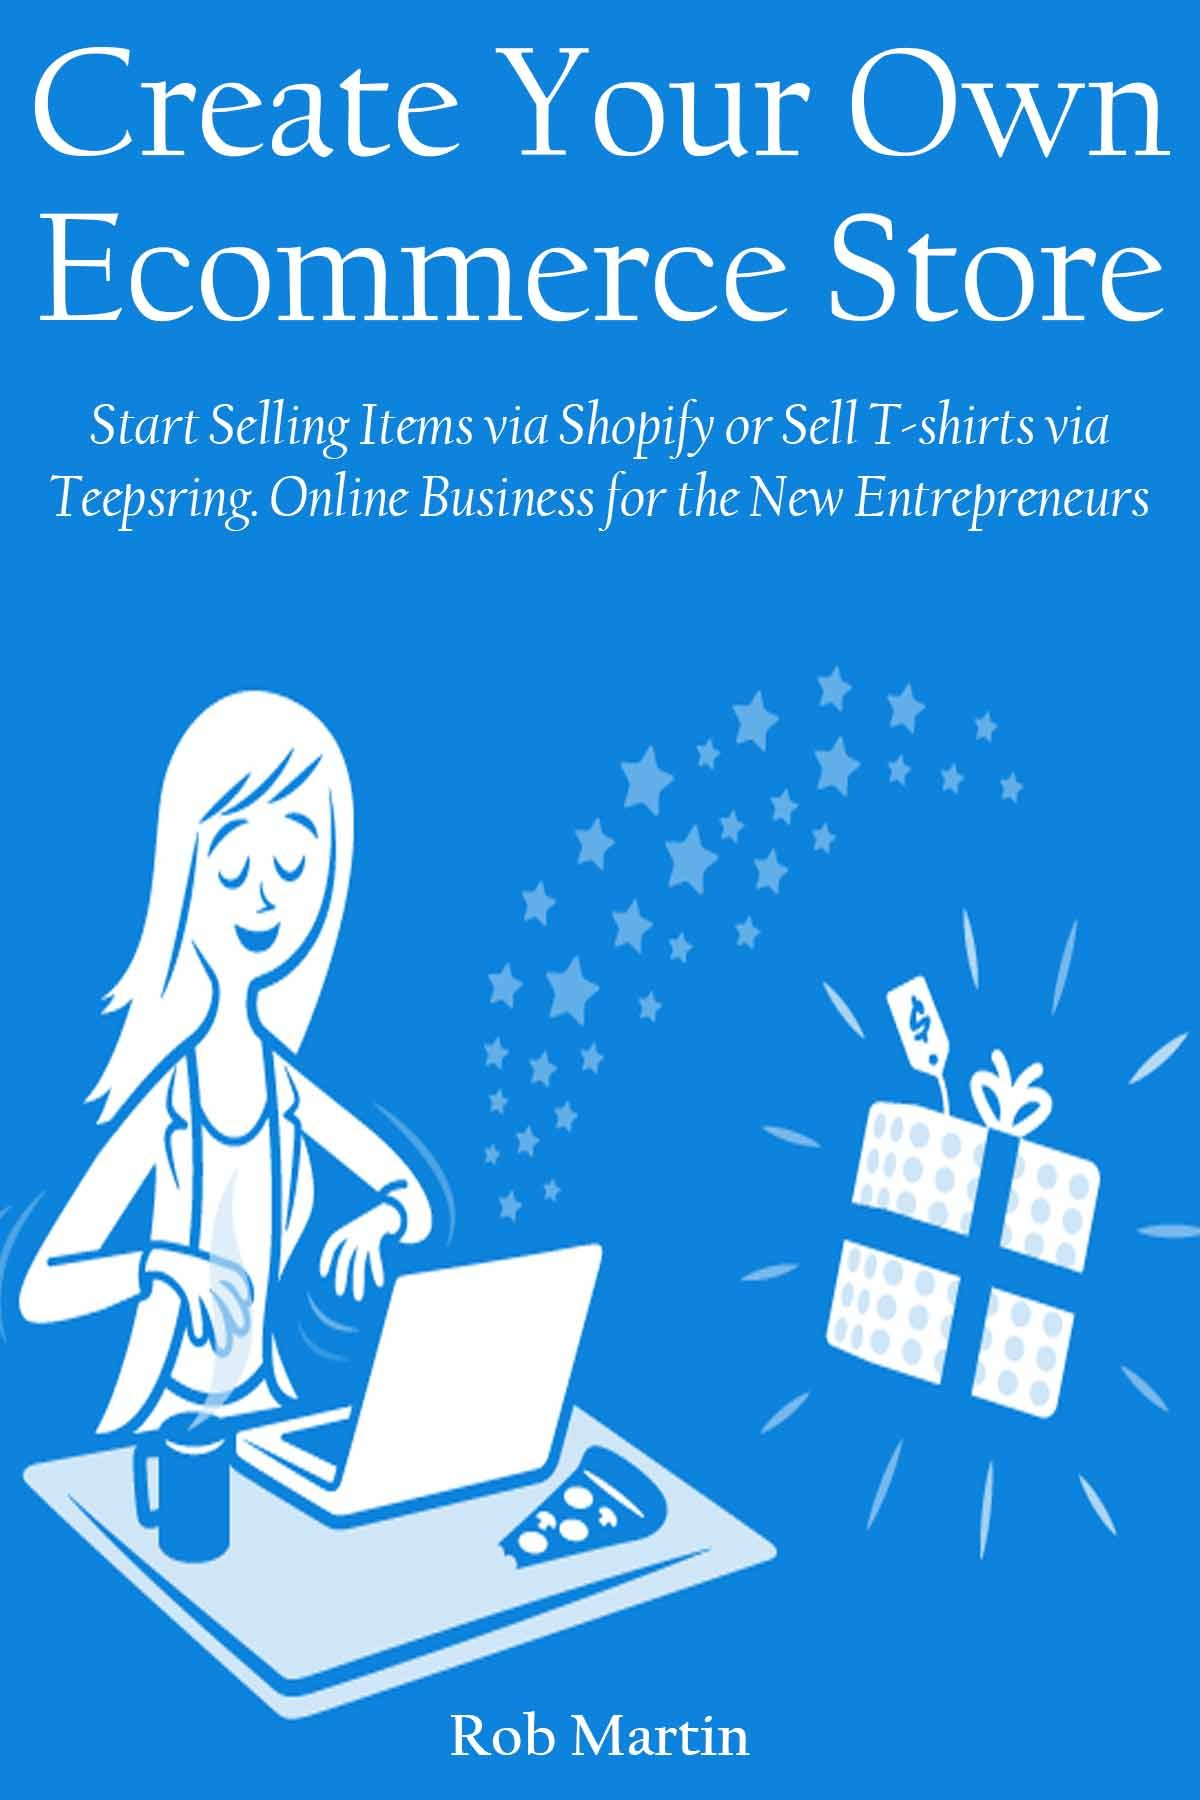 CREATE YOUR OWN ECOMMERCE STORE: Start Selling Items via Shopify or Sell T-shirts via Teepsring. Online Business for the New Entrepreneurs